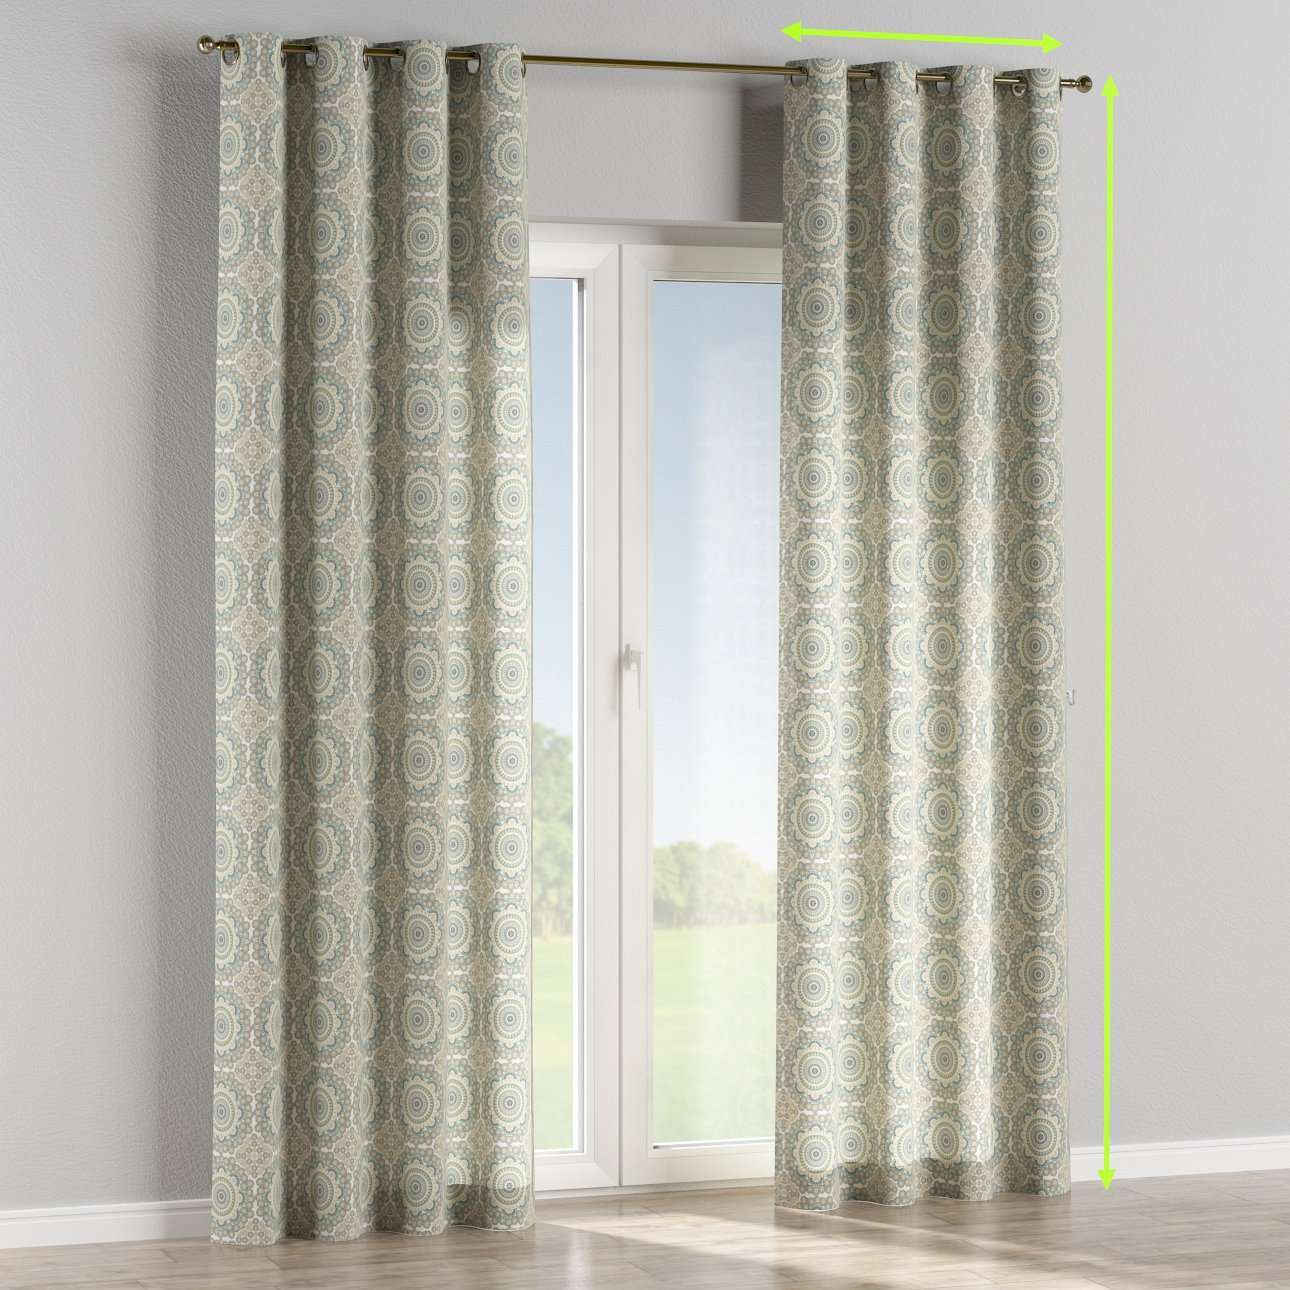 Eyelet curtains in collection Comics/Geometrical, fabric: 137-84